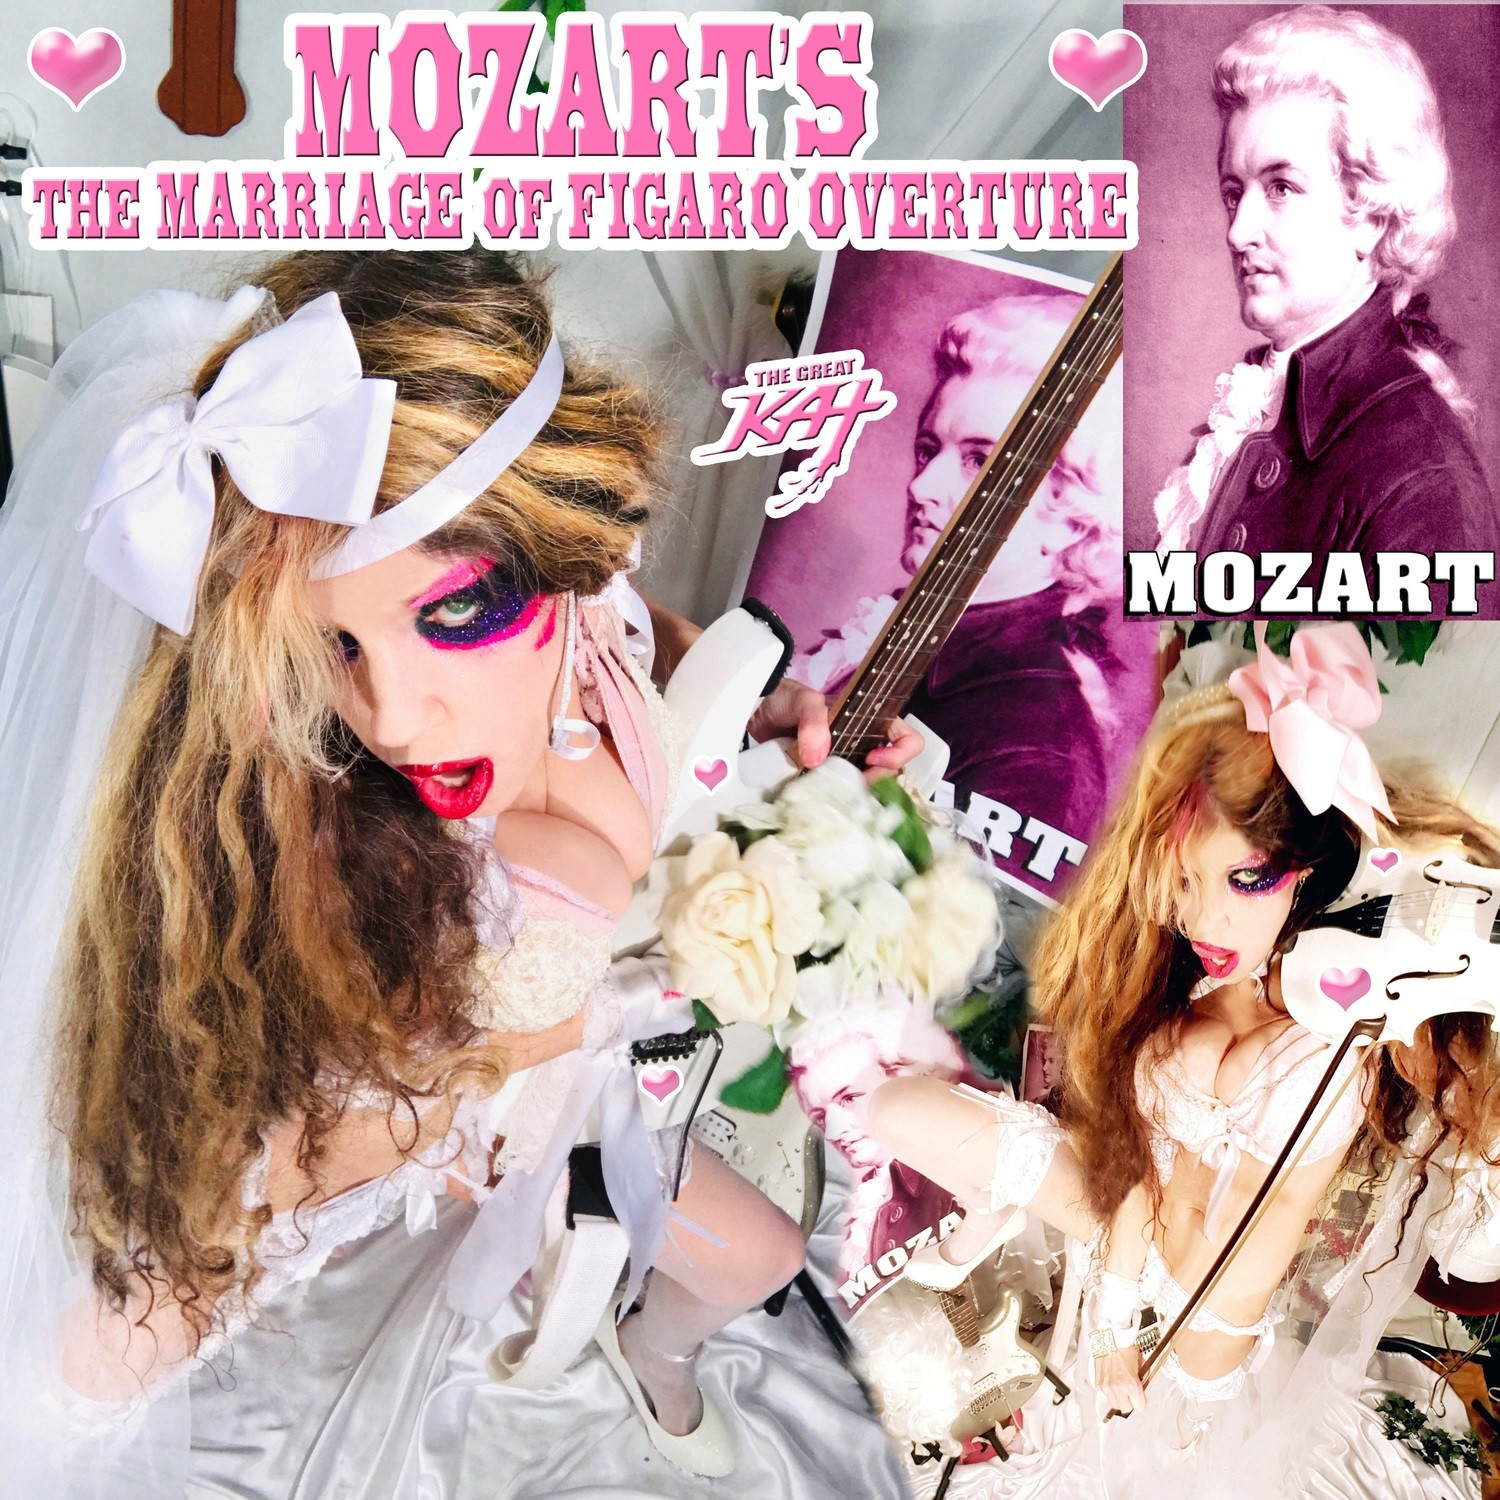 """NEW MOZART'S """"THE MARRIAGE OF FIGARO OVERTURE"""" SINGLE Music CD (2:09)! PERSONALIZED AUTOGRAPHED by THE GREAT KAT! (Signed to Customer's Name)! ONLY $19.99"""